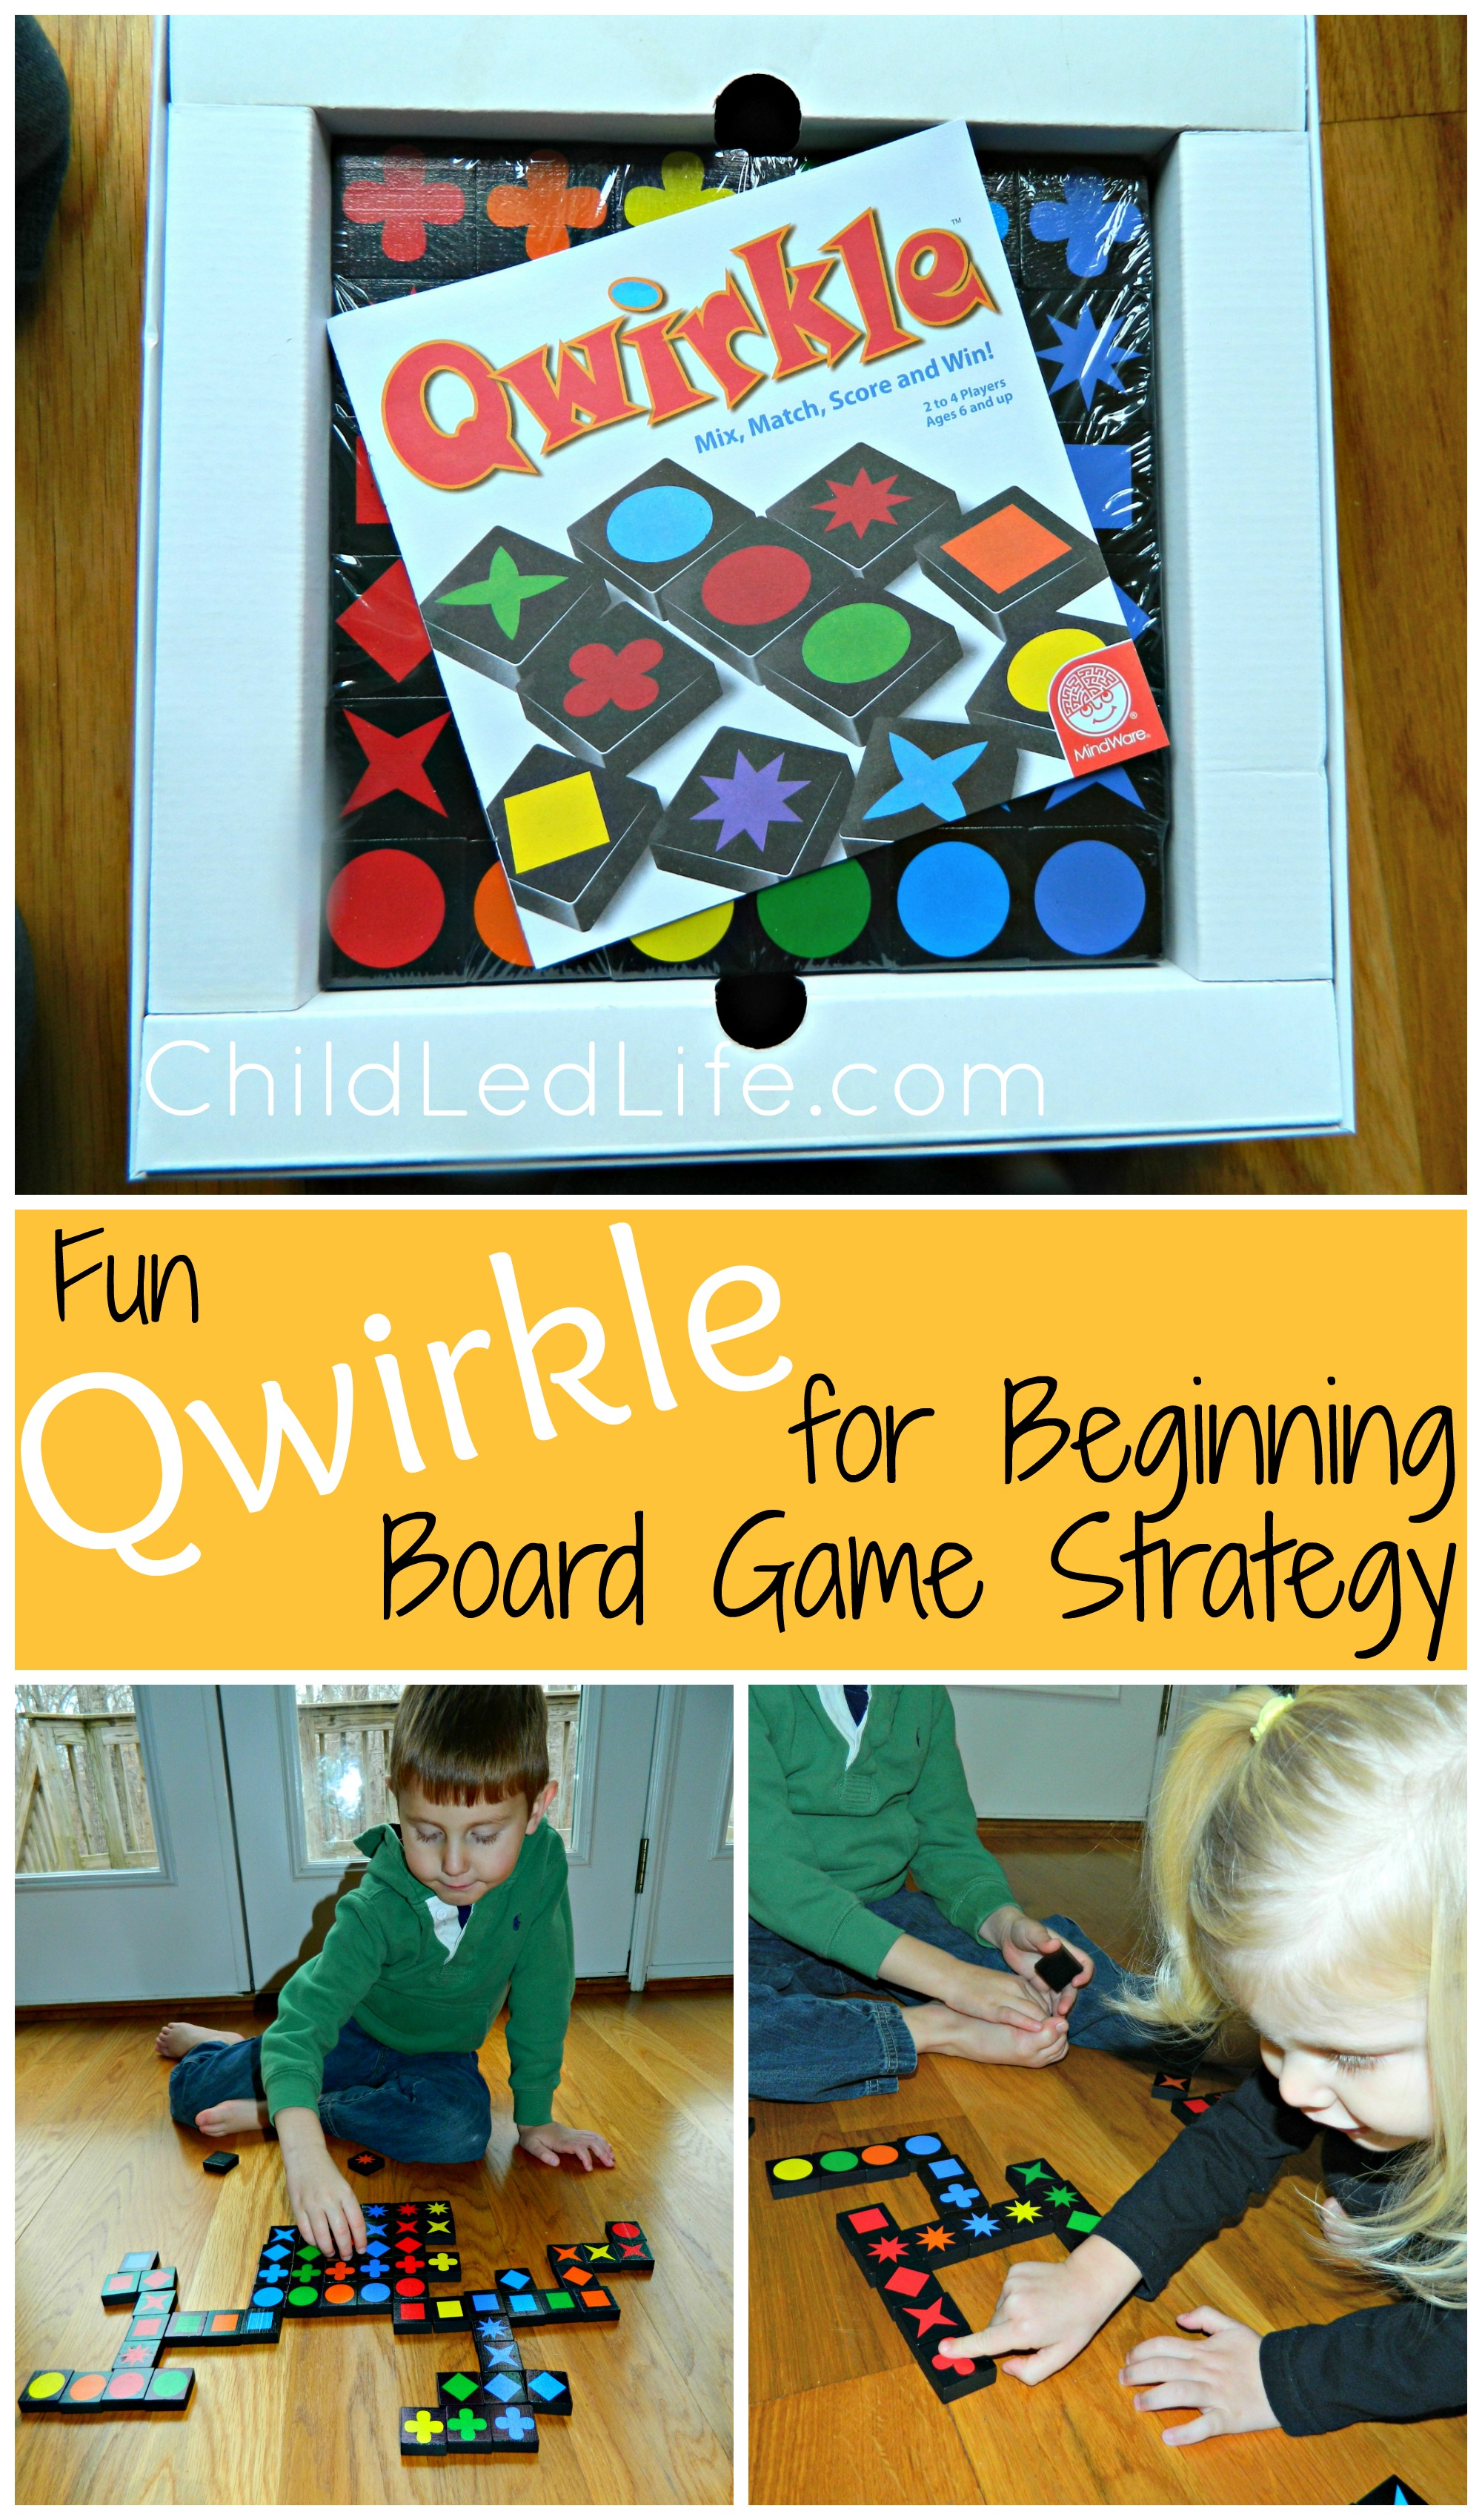 Beginning Board Game Strategy with Qwirkle